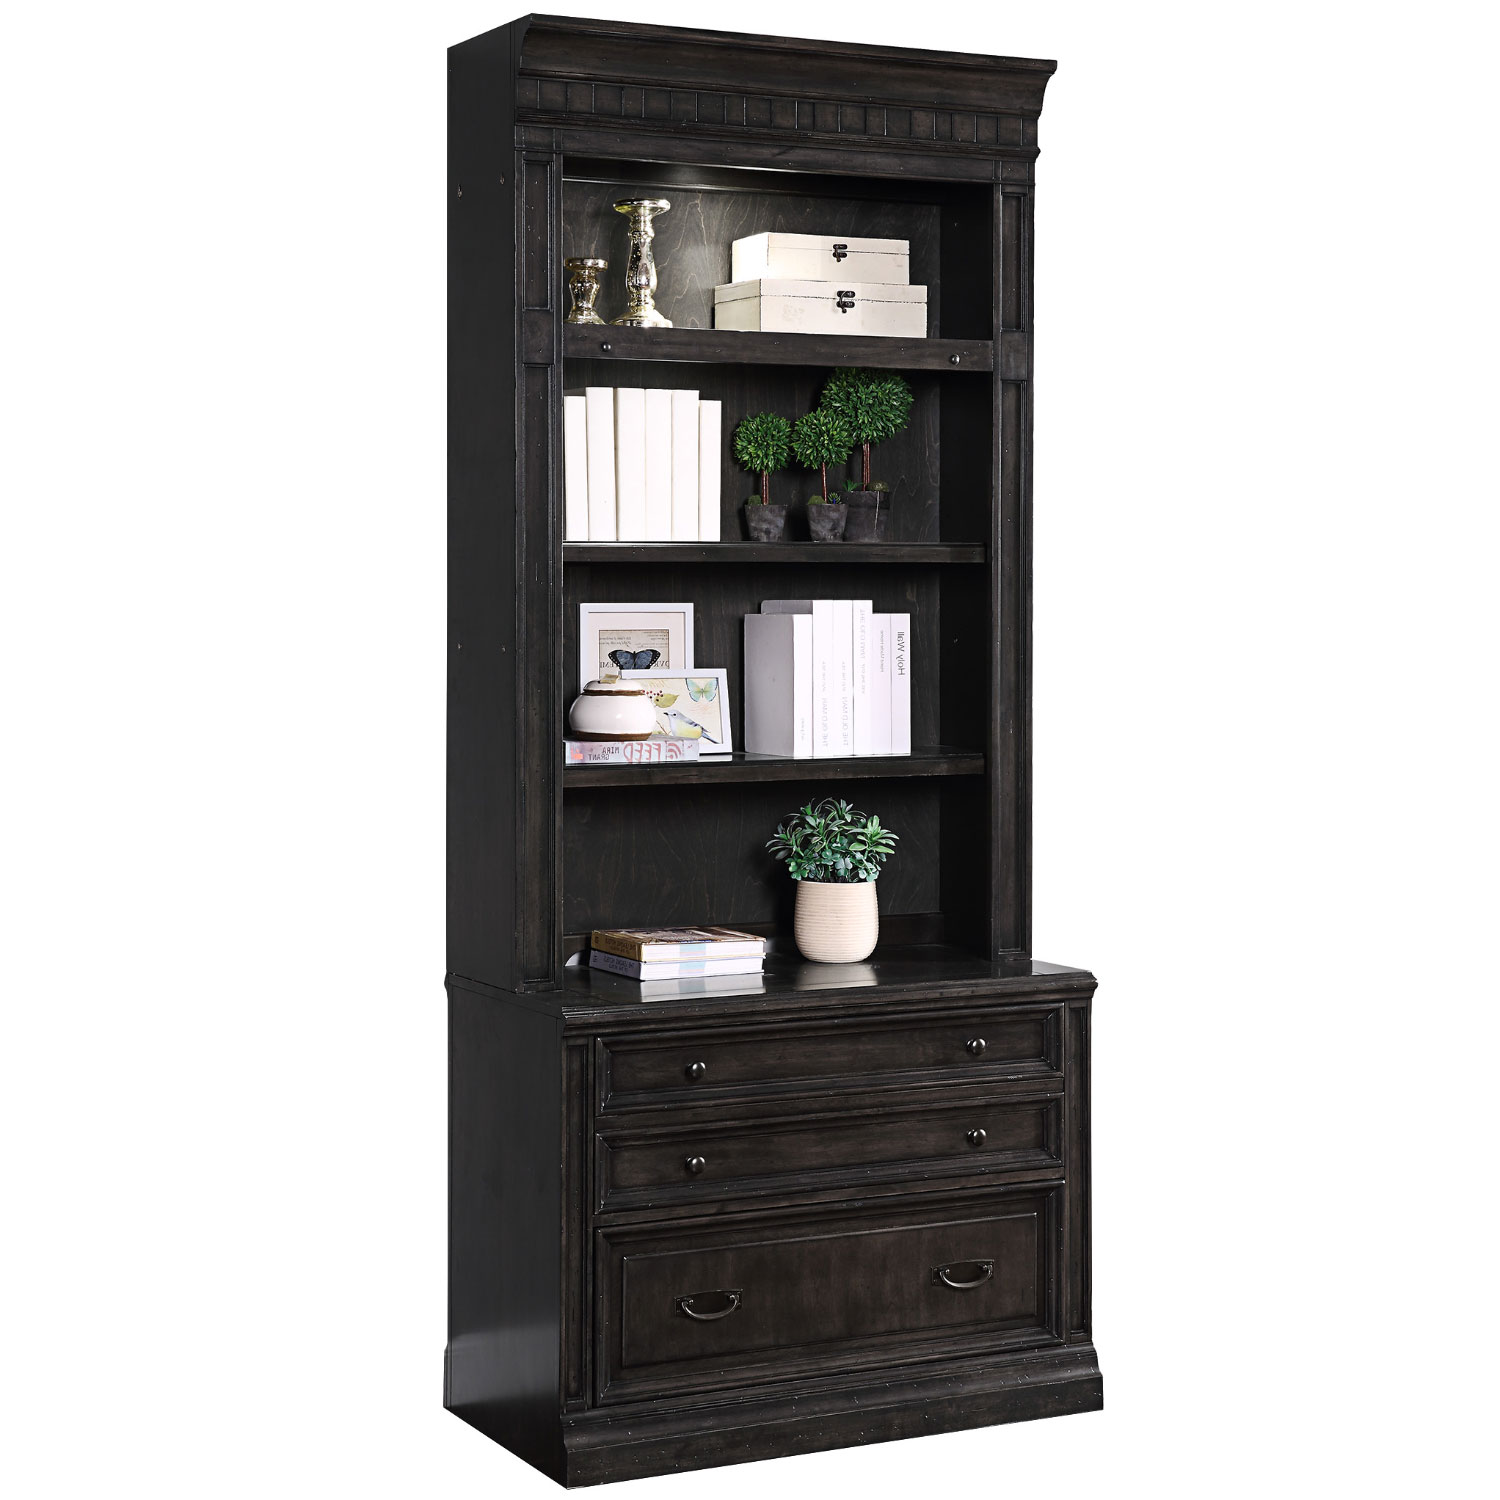 Washington Heights Lateral File Hutch In Washed Charcoal Grey Wood By Parker House